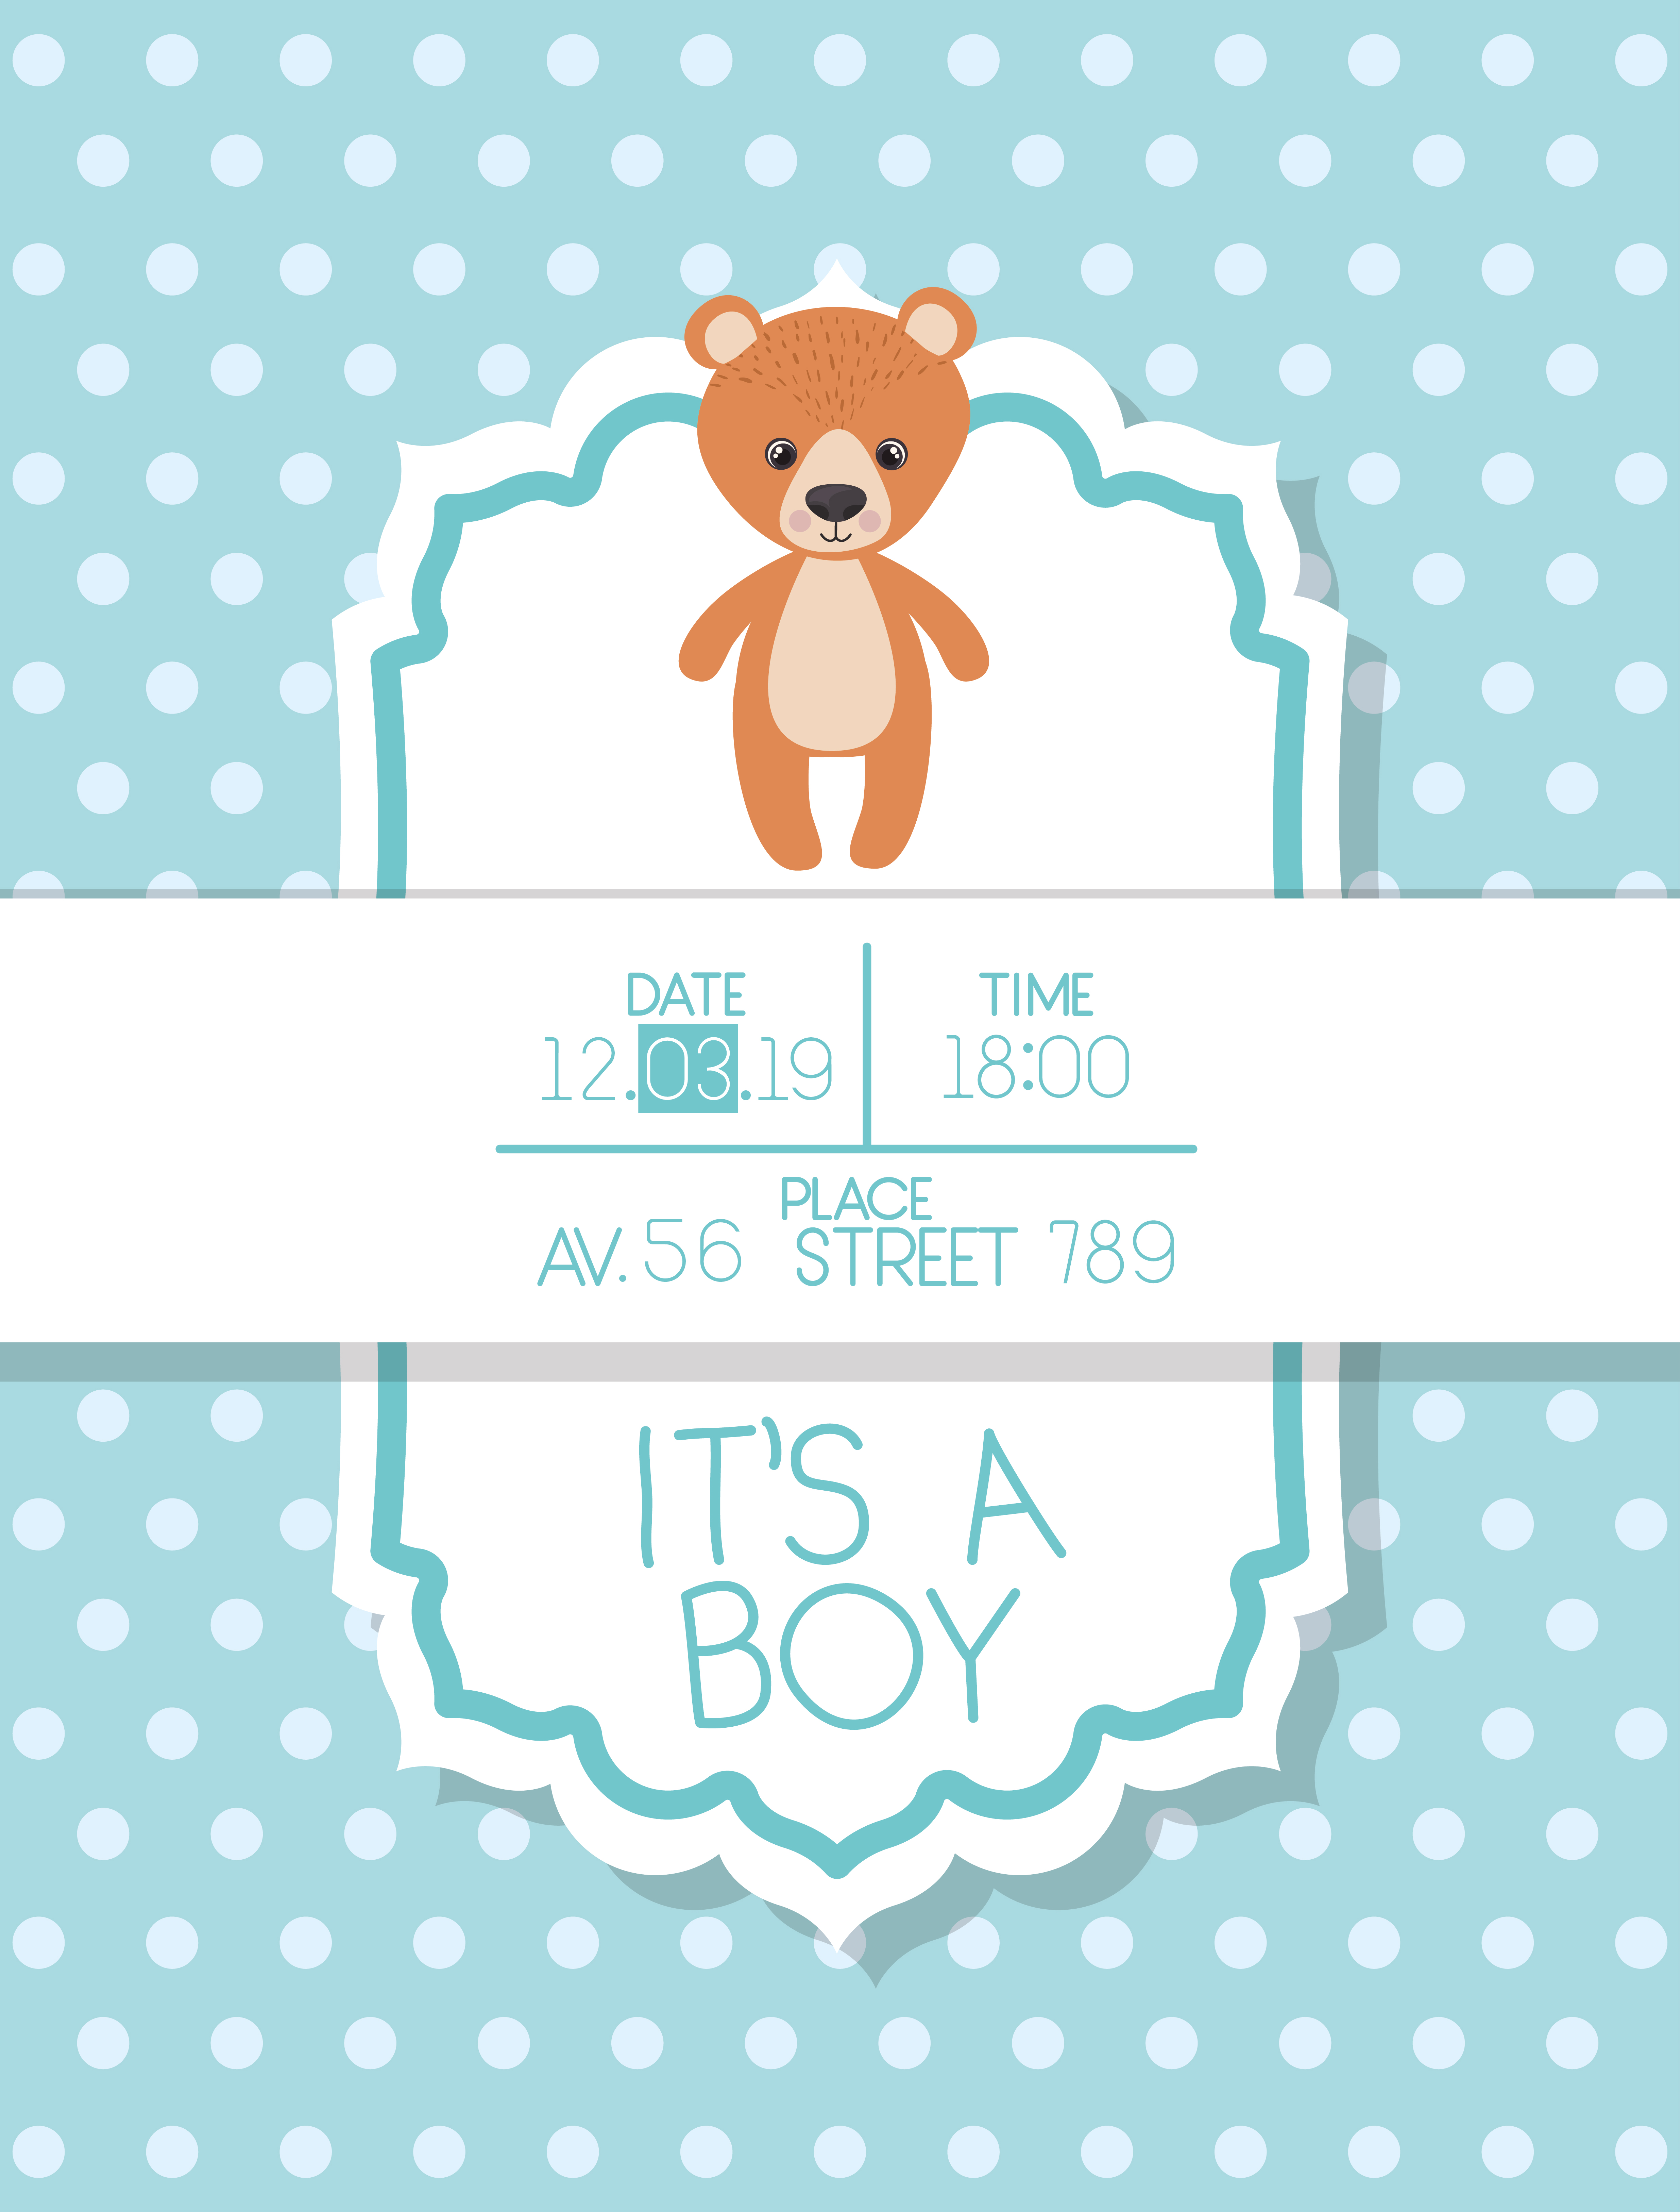 Its A Boy Baby Shower Card With Bear Teddy Download Free Vectors Clipart Graphics Vector Art